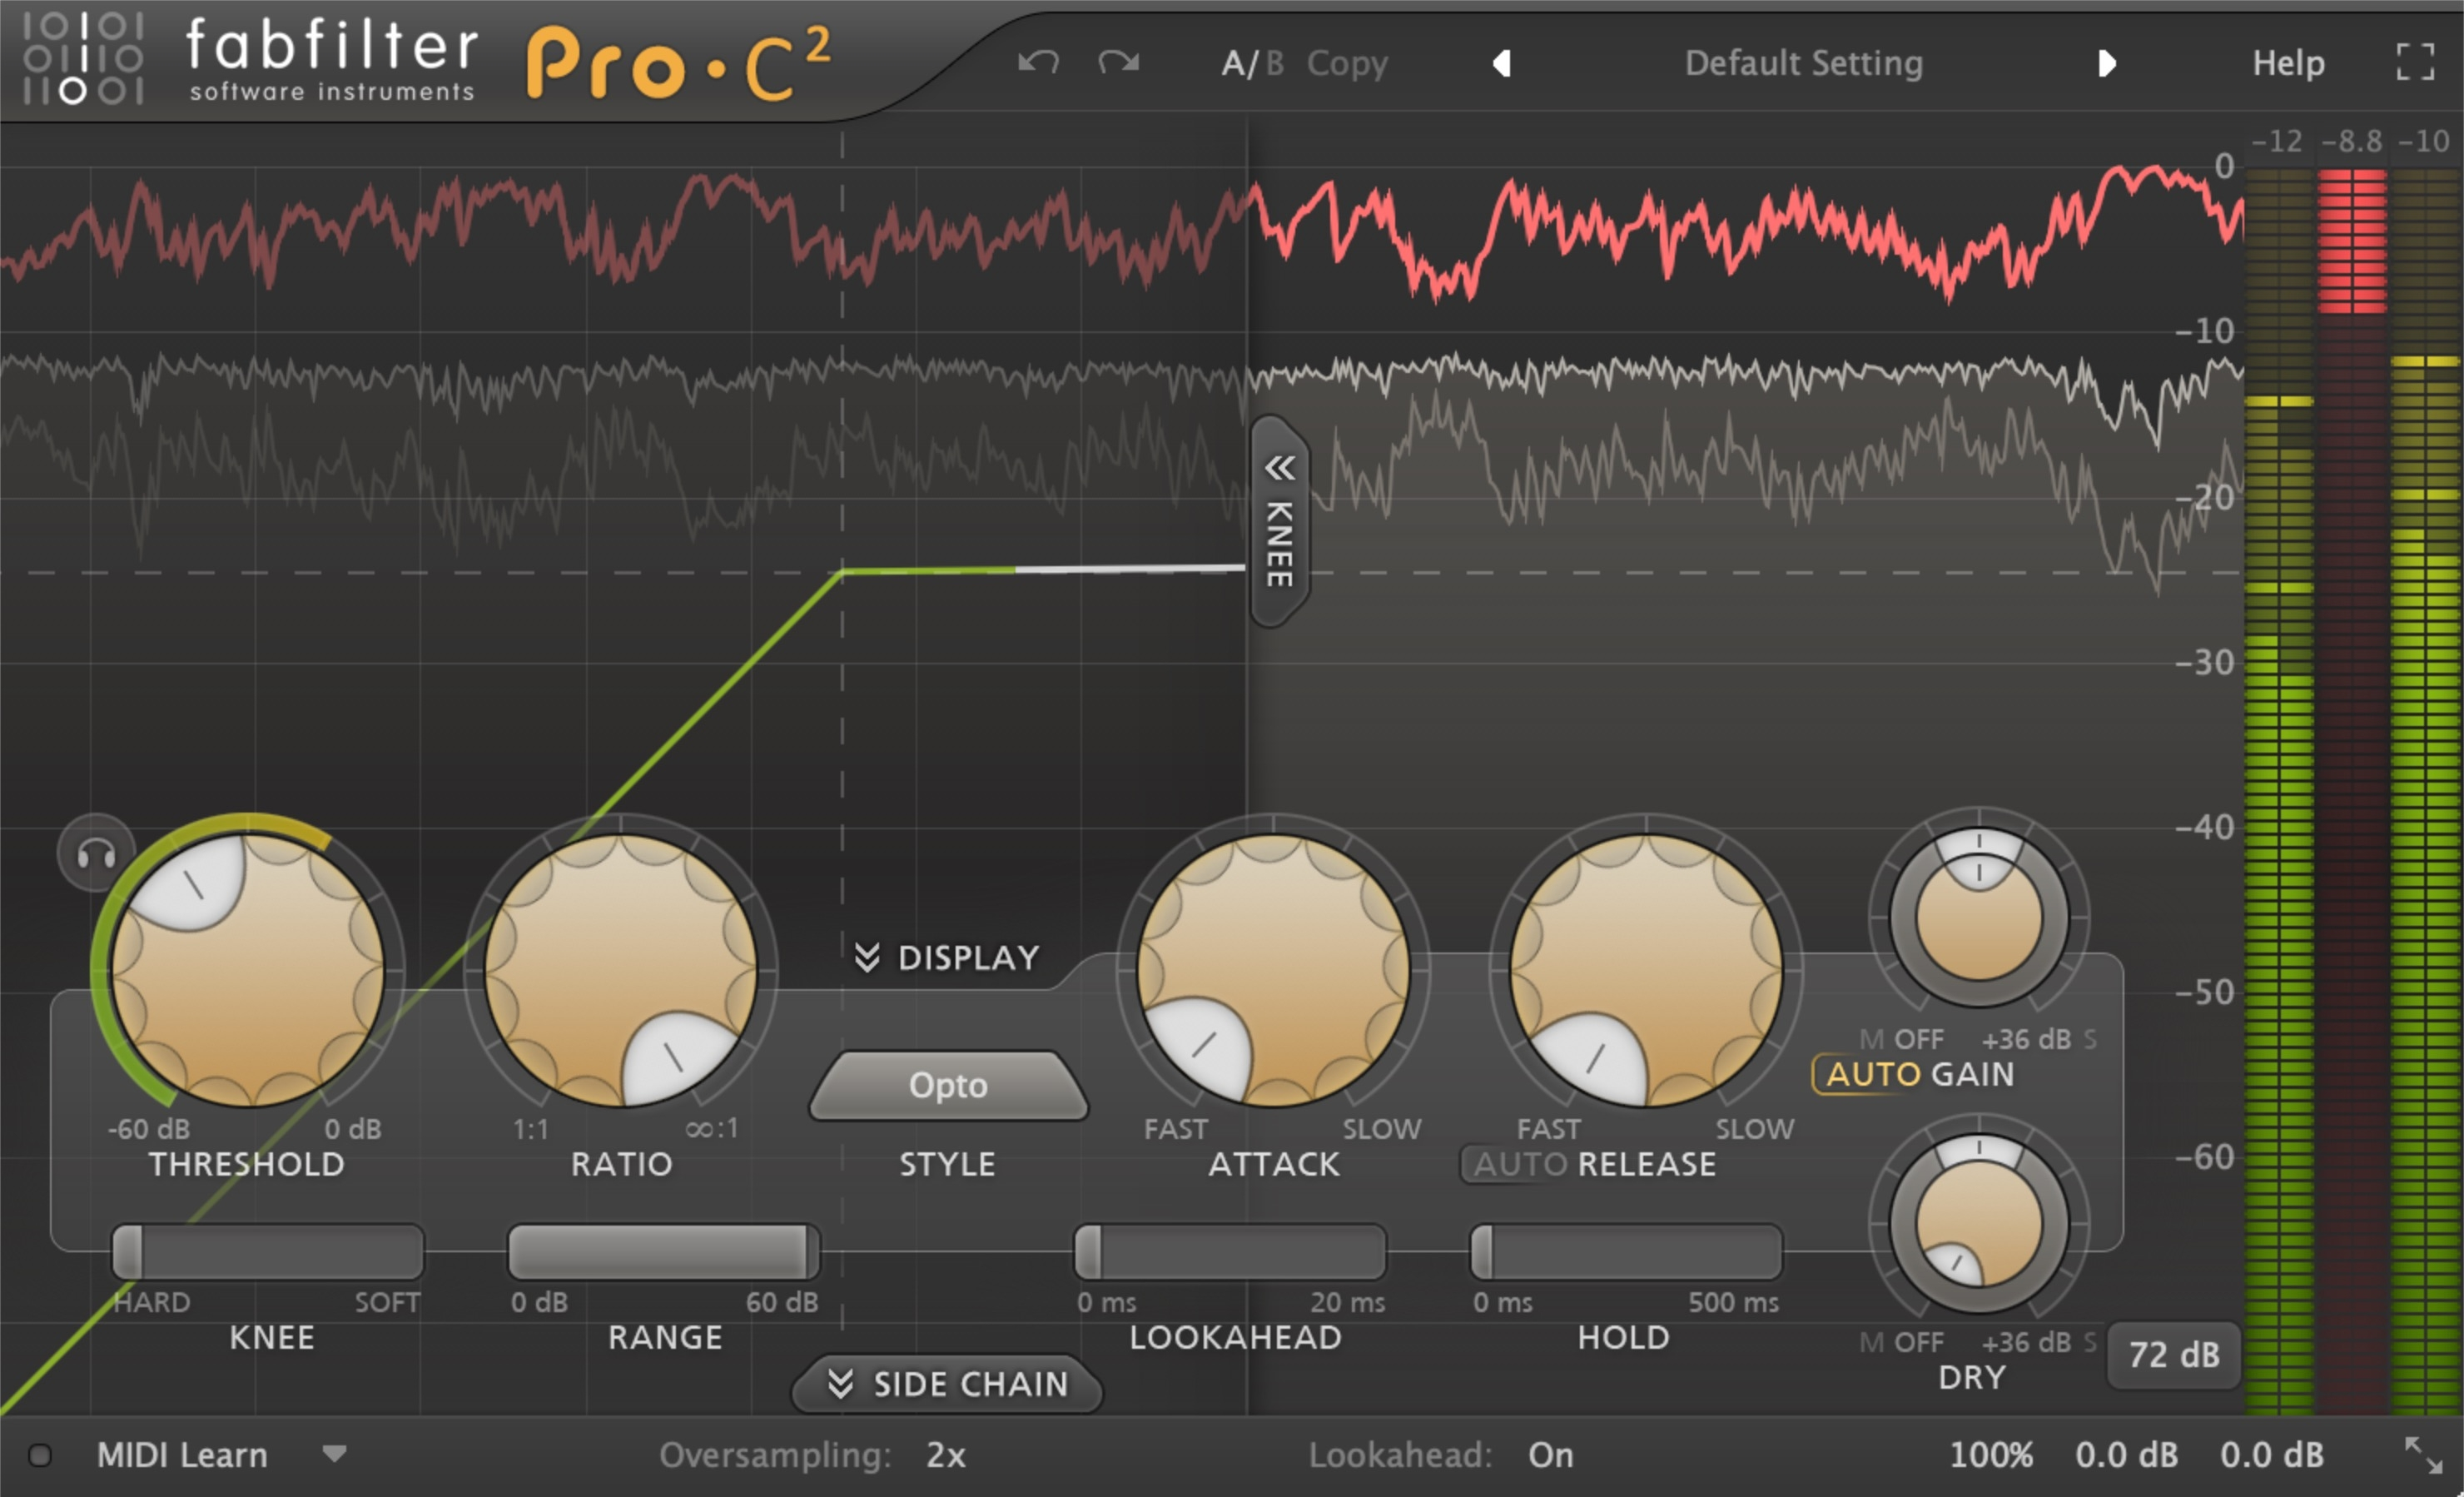 FabFilter Pro C Compressor settings